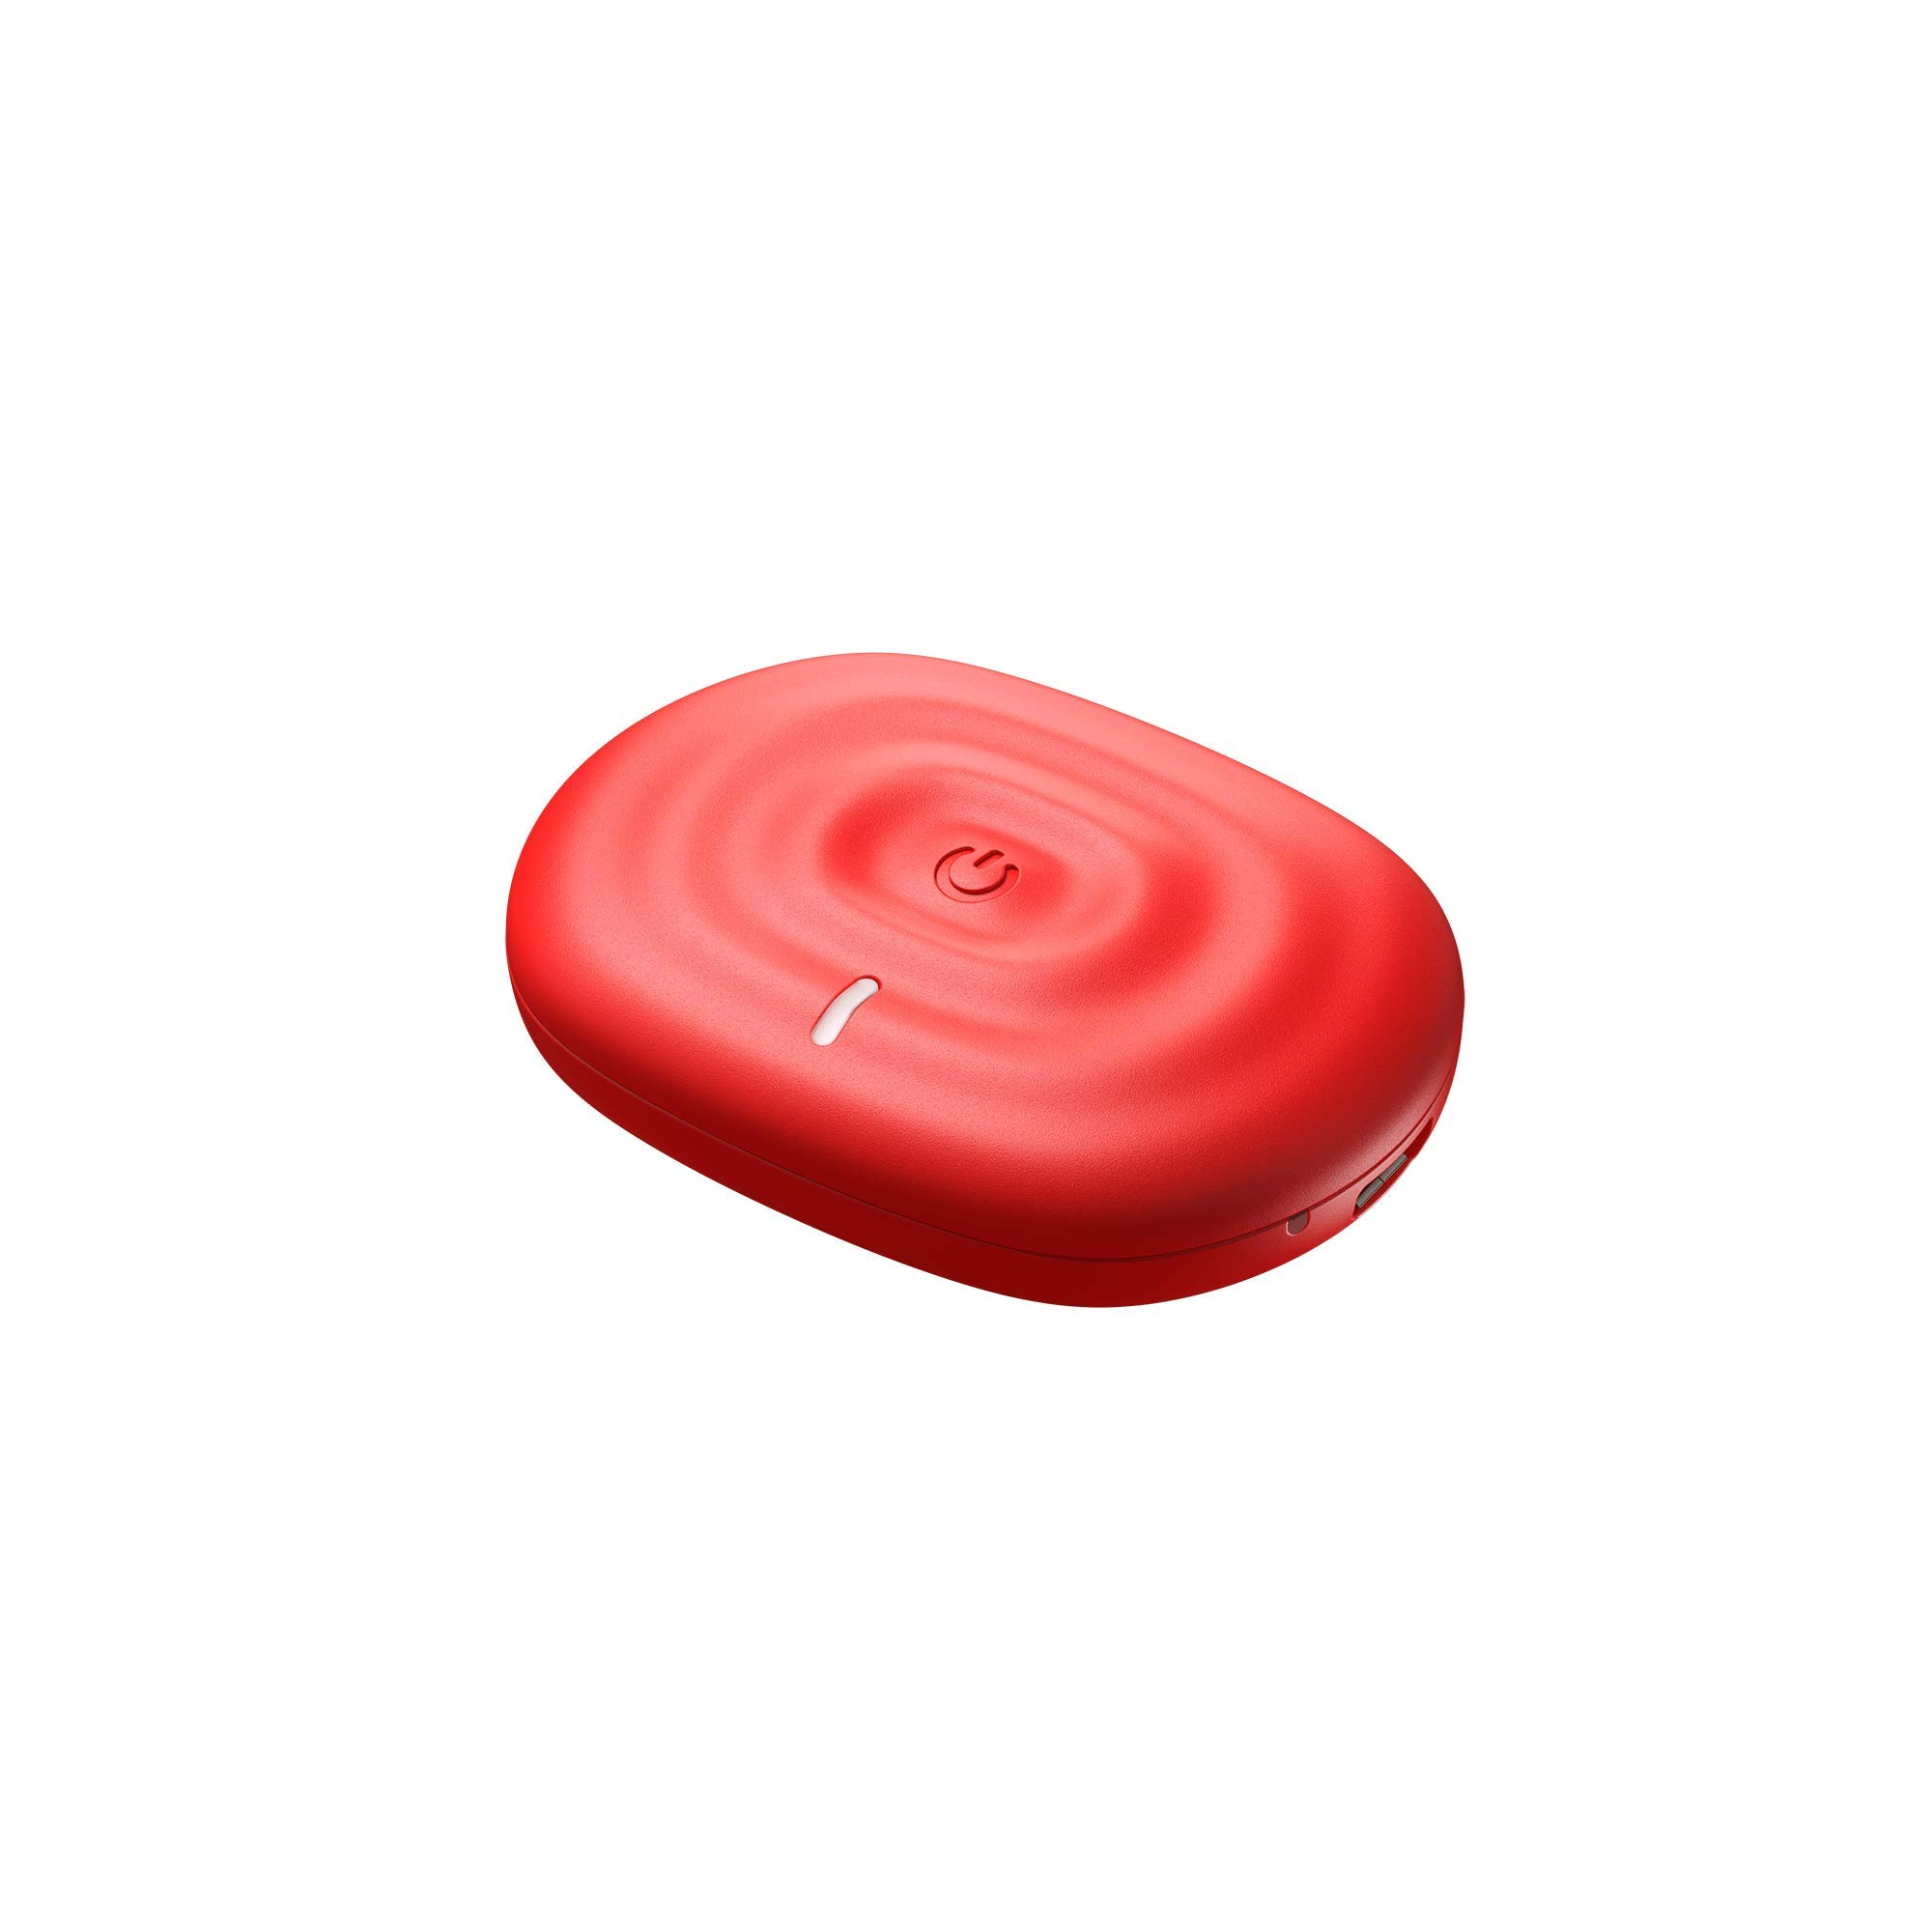 PowerDot 2.0 - Smart Electric Muscle Stimulator - Duo - Red - App Controlled Wireless Electrical Muscle Stimulator for iOS and Android - Speed up Recovery, Improve Strength, Reduce Risk of Injury by Powerdot (Image #4)